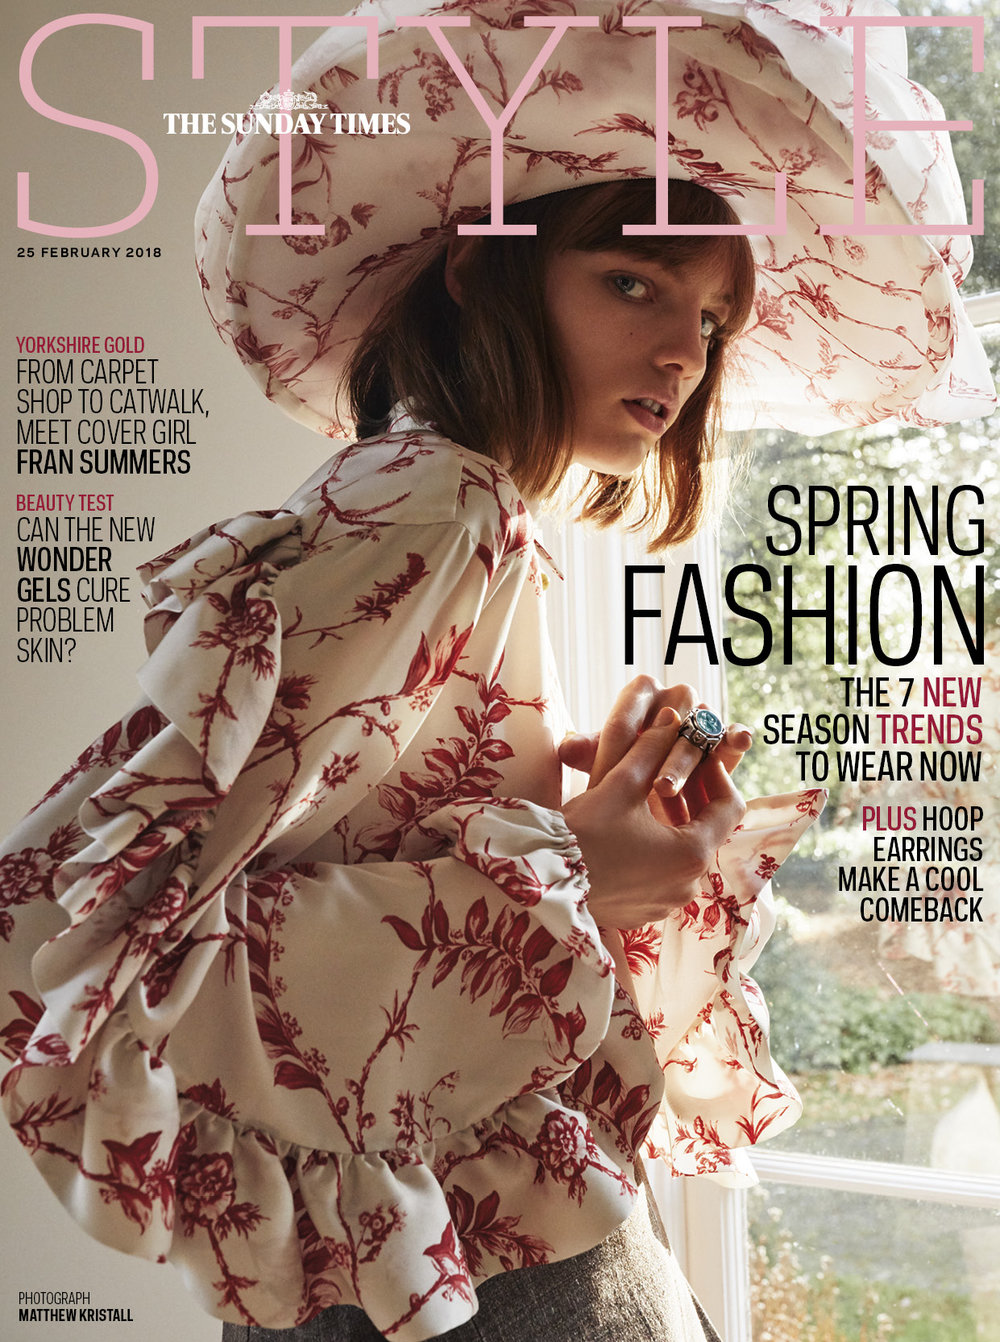 The Sunday Times Style Magazine - Spring 2018 Fashion Issue